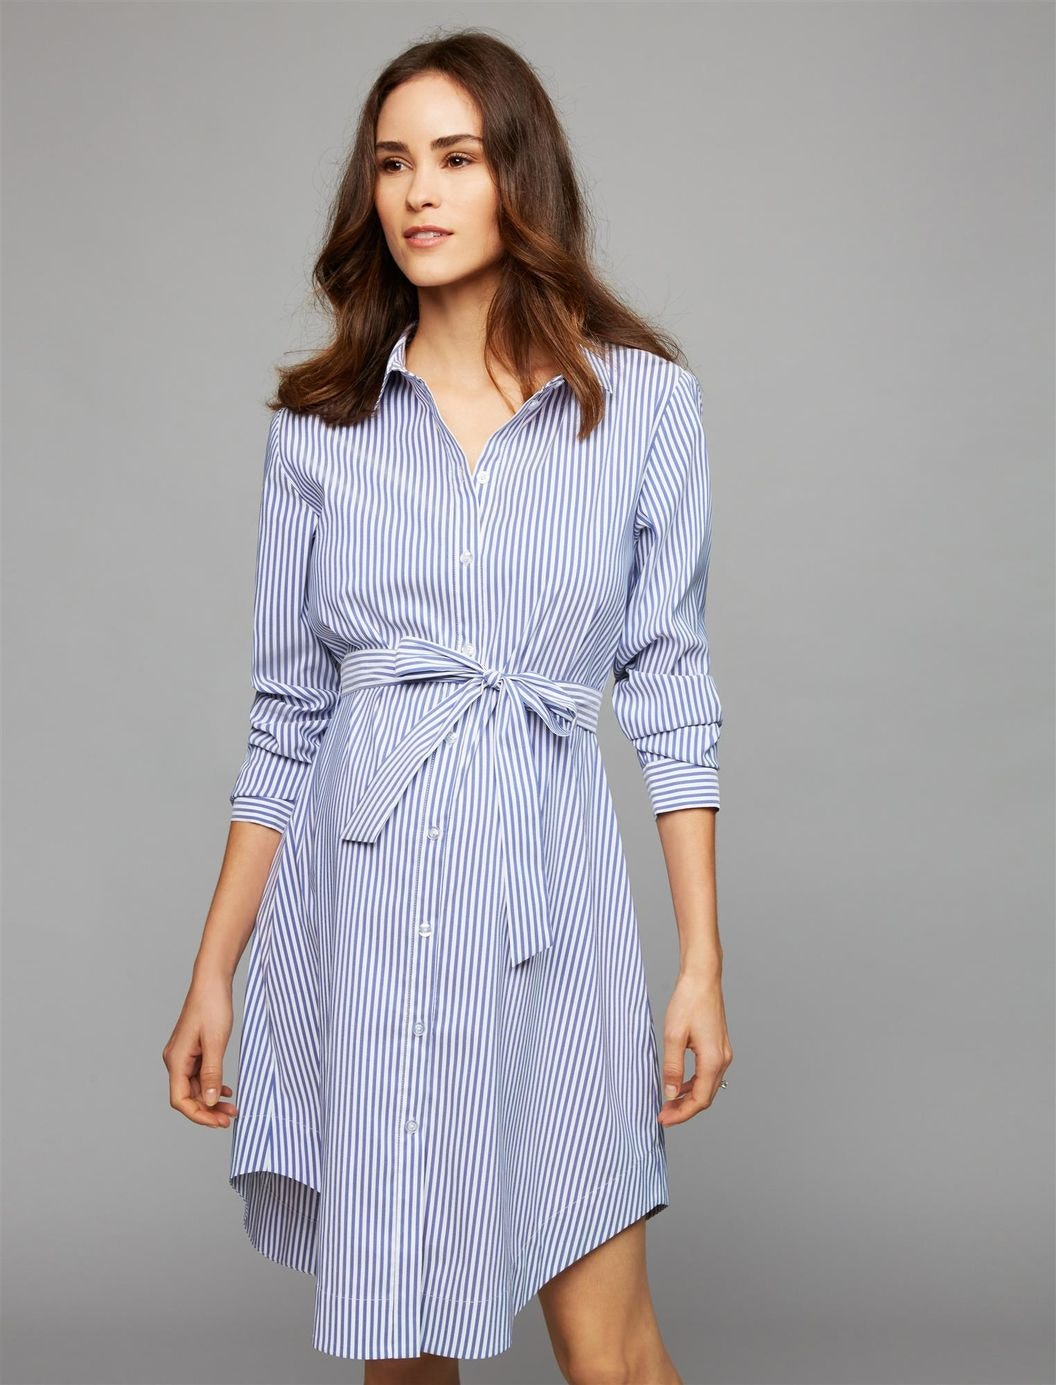 25 Maternity-Wear Options That Are Actually Stylish